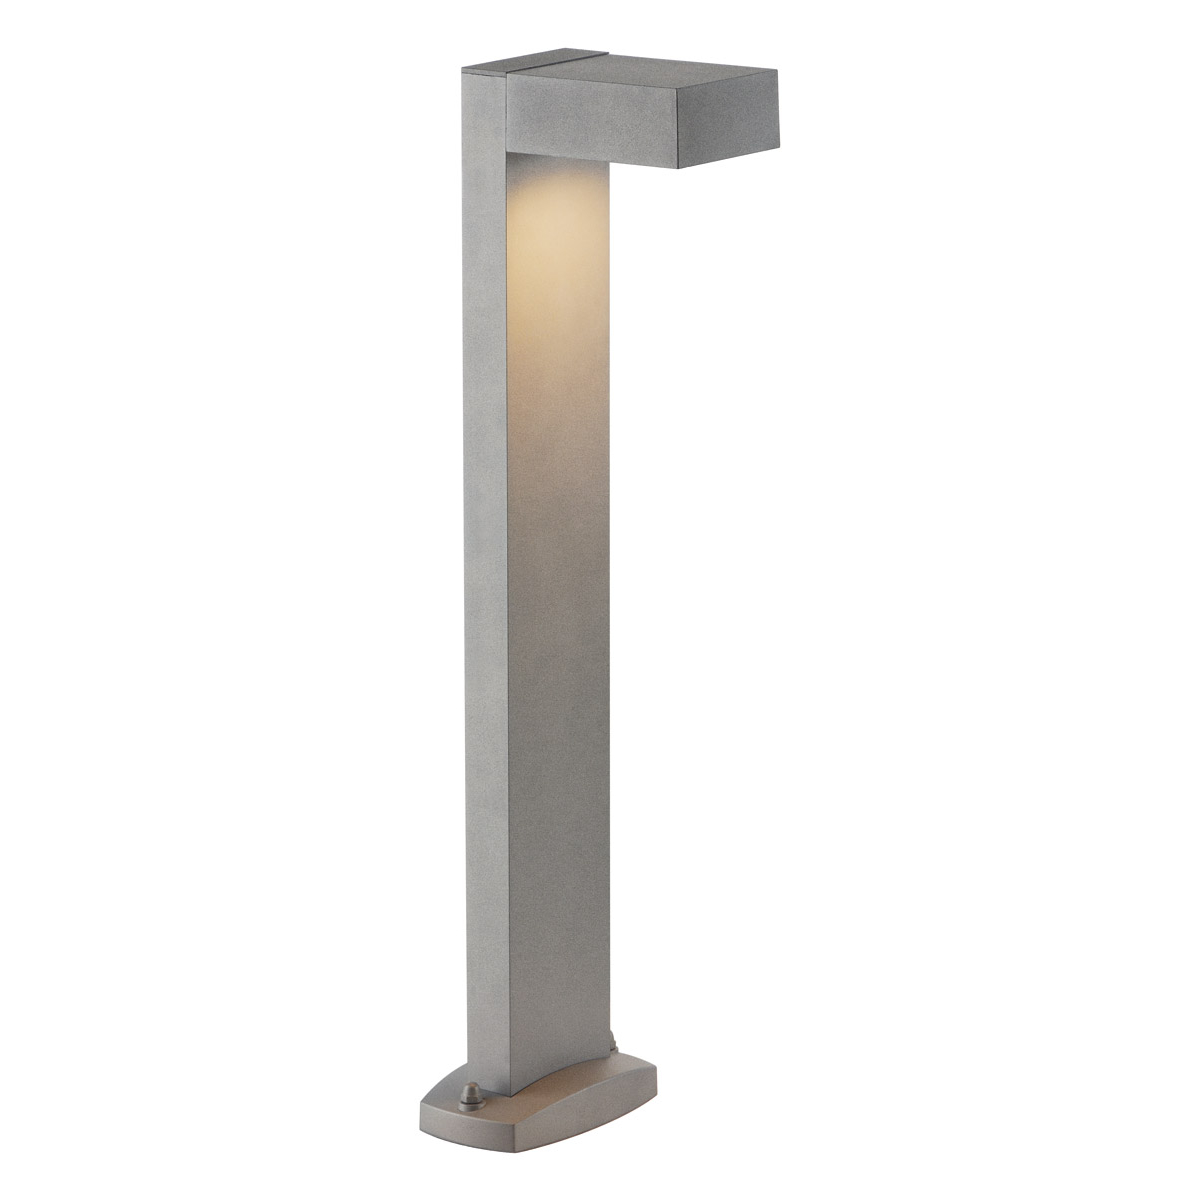 slv 232294 quadrasyl stehleuchte sl 75 eckig silbergrau. Black Bedroom Furniture Sets. Home Design Ideas